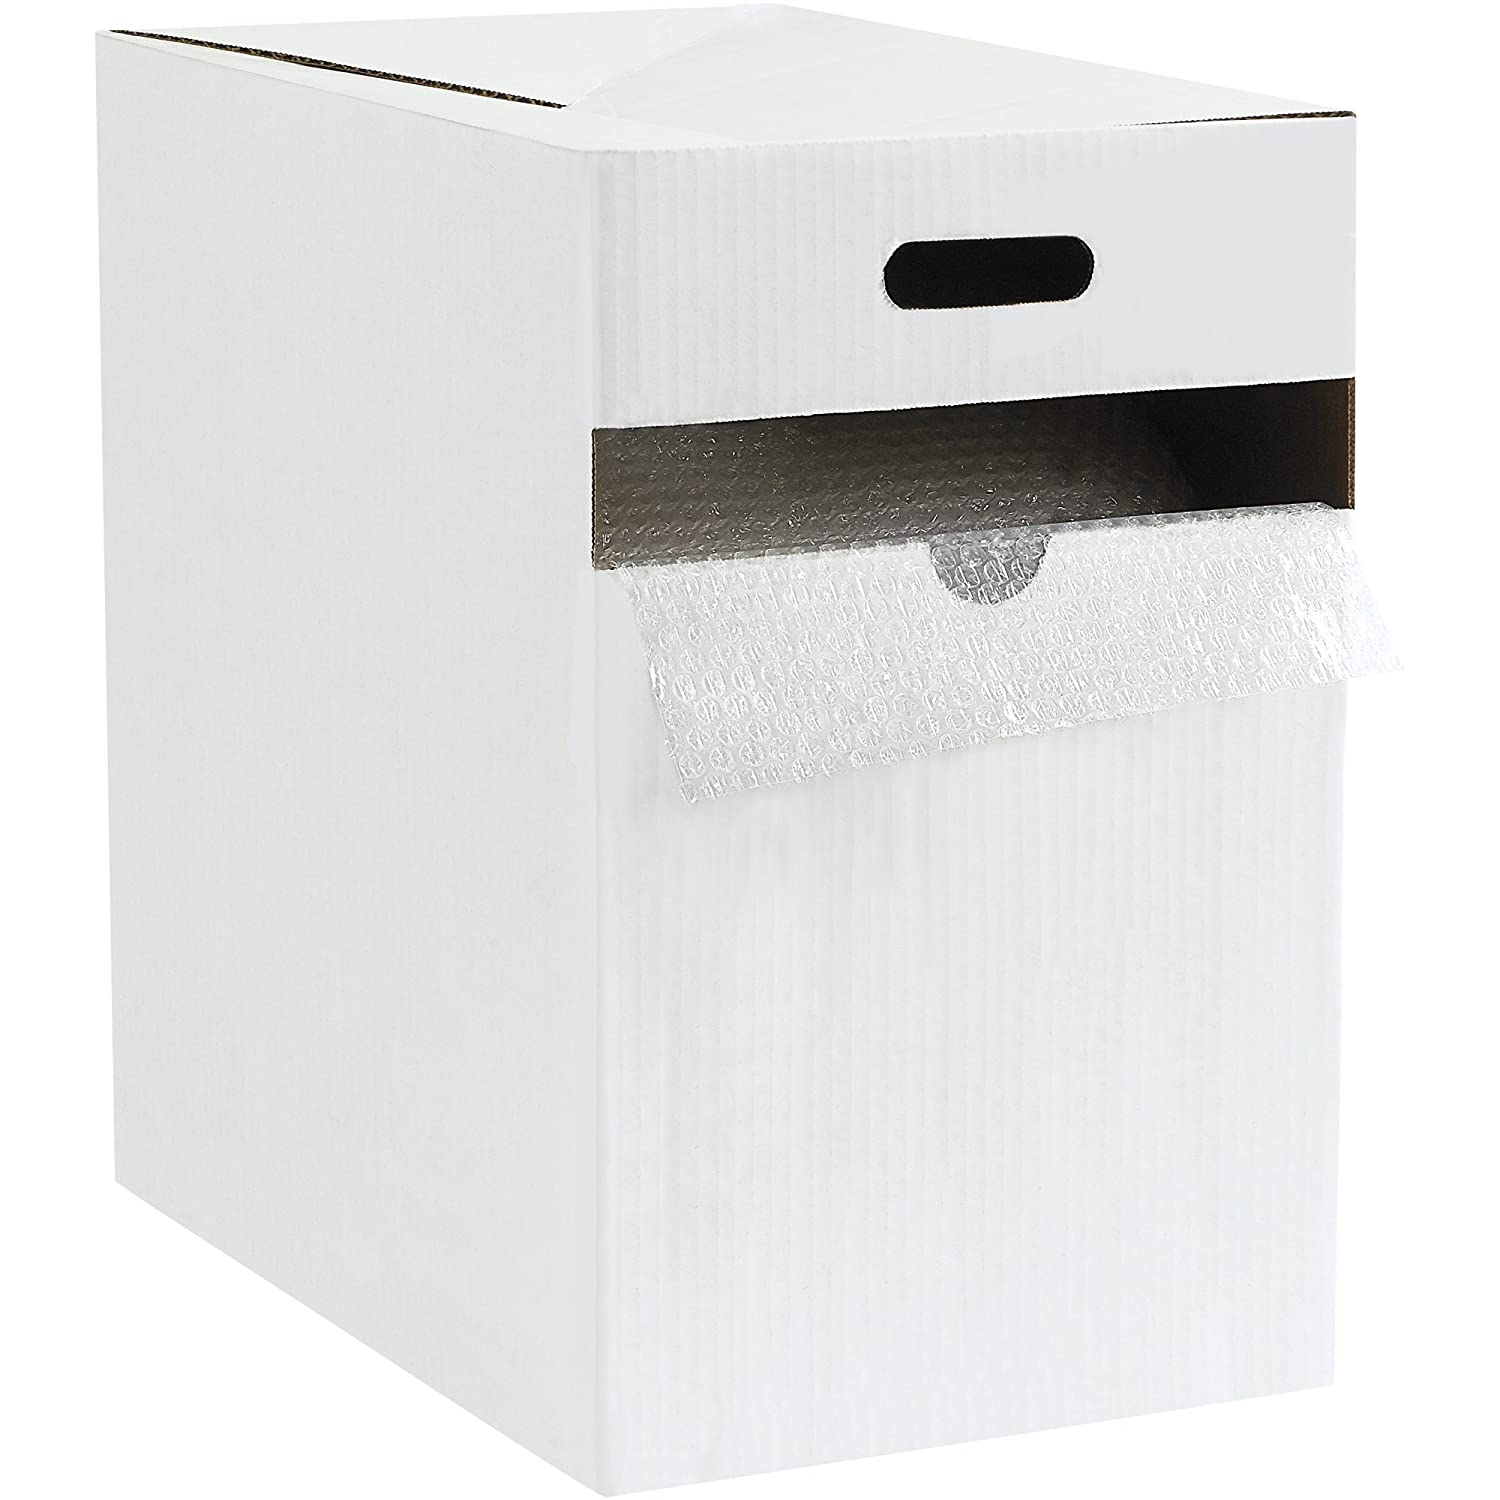 Boxes Fast BFBDAD31612 Adhesive Air Bubble Dispenser Pack, 3/16' x 12' x 175', Clear (Pack of 1)